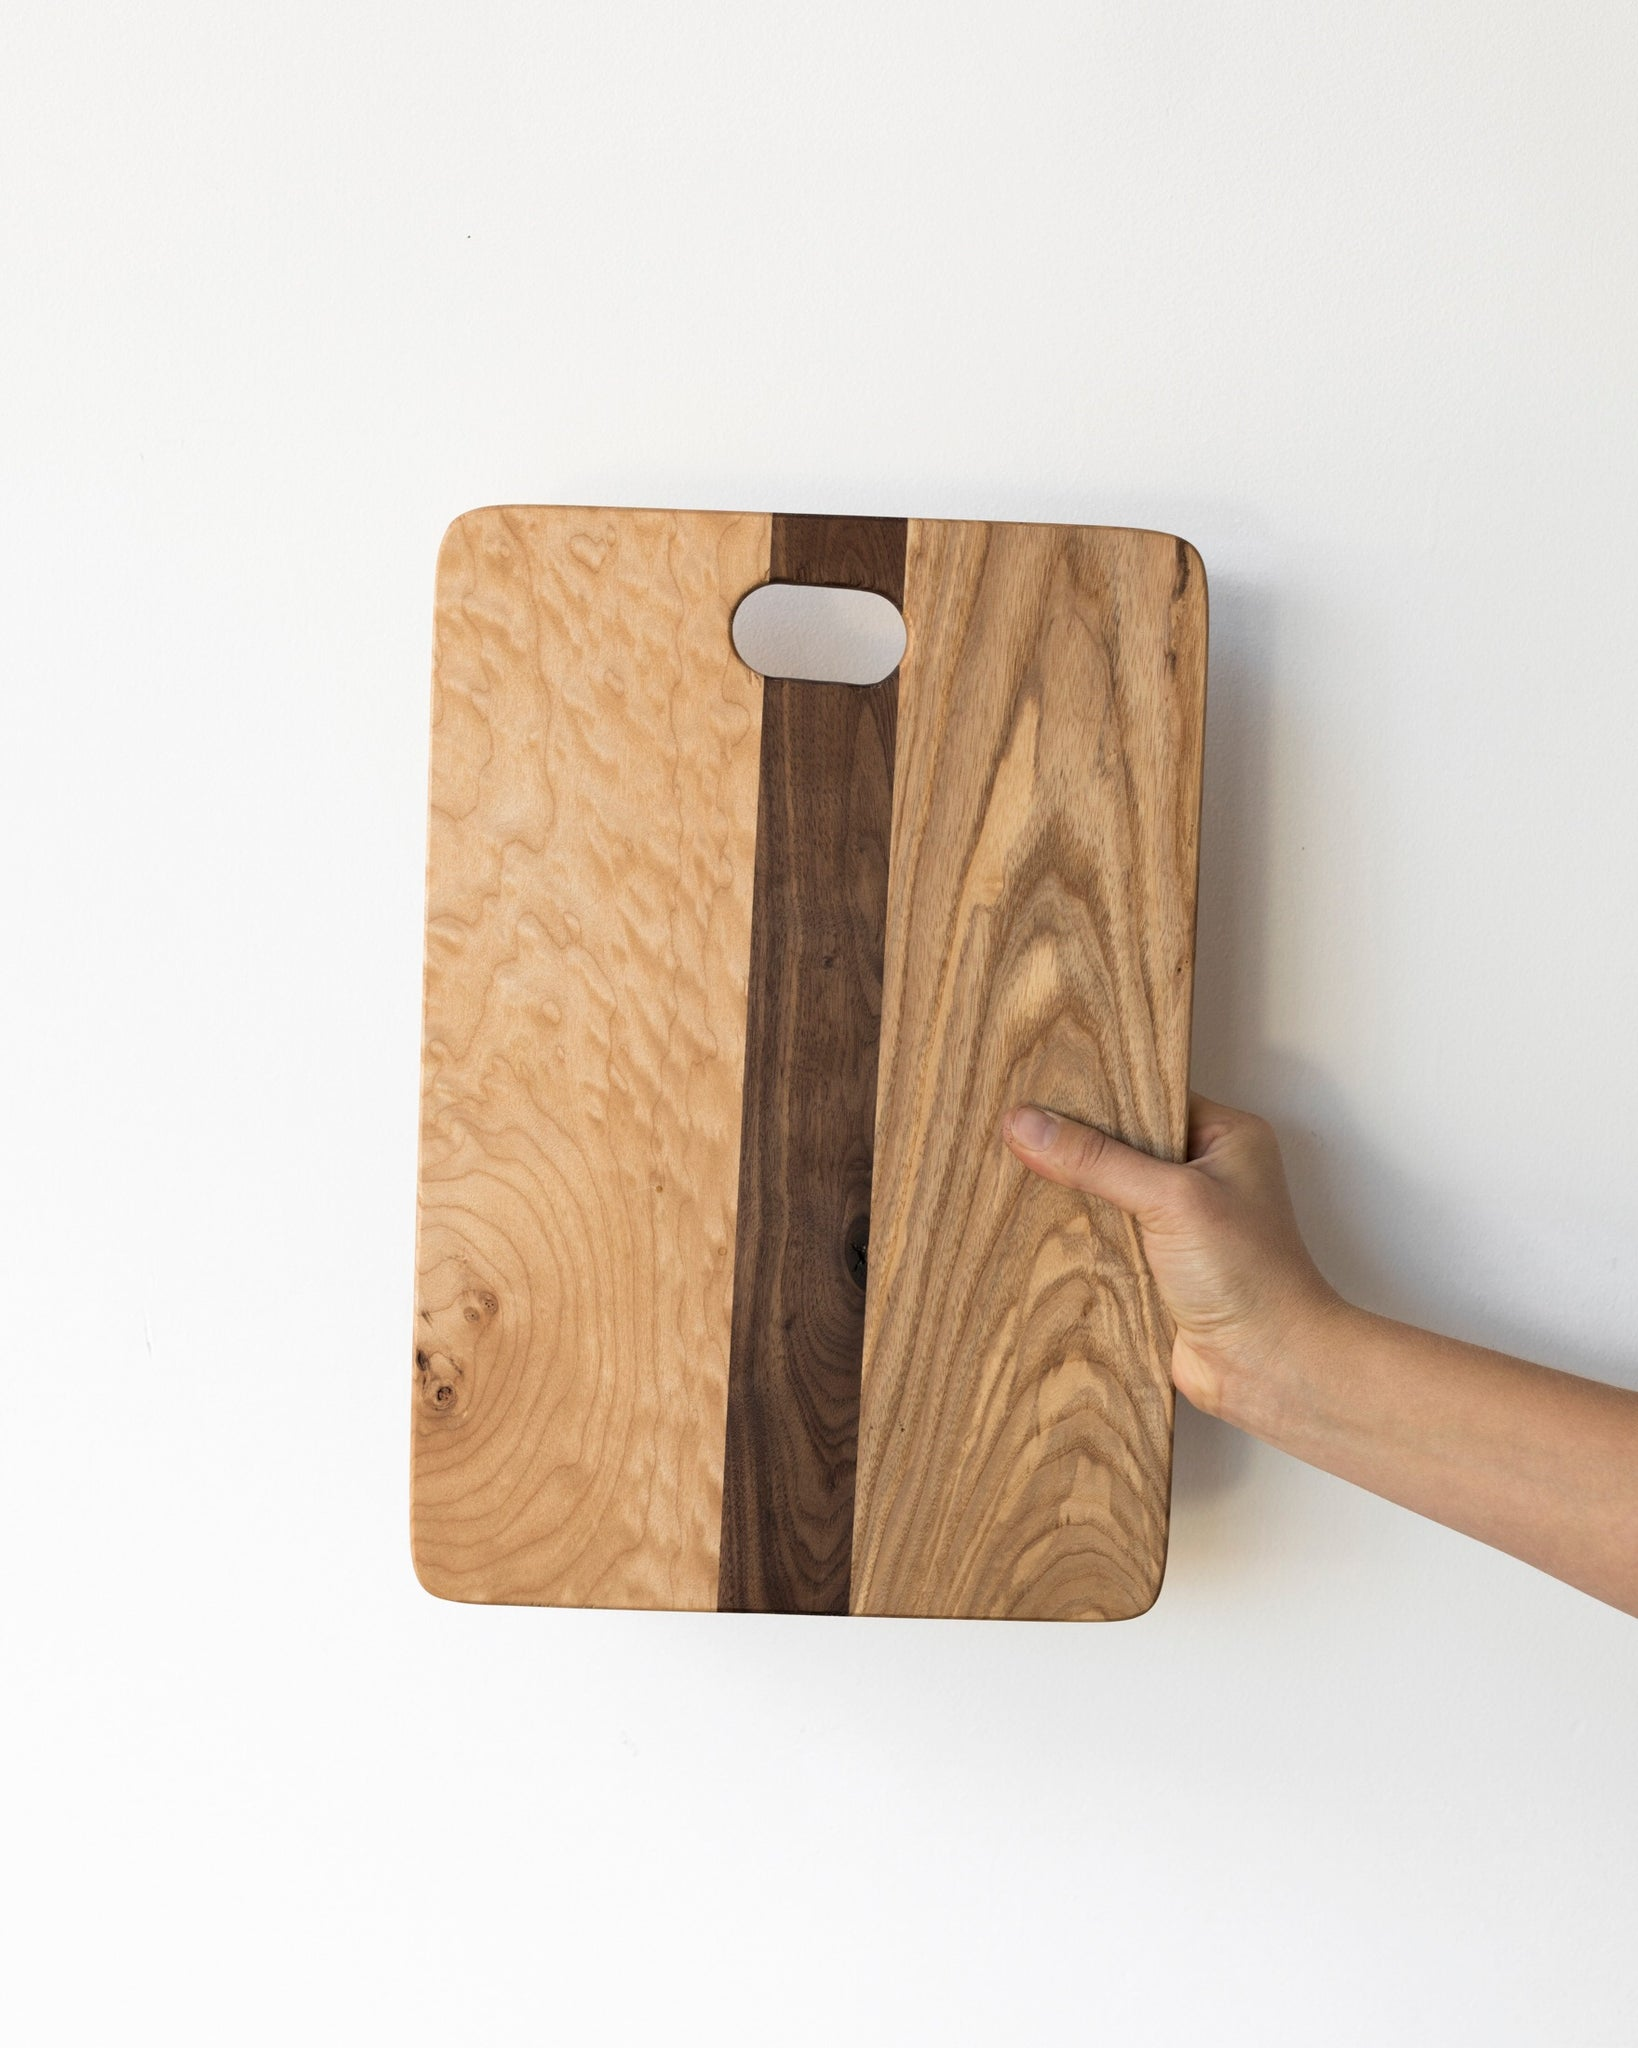 Sam Kerr Cutting boards